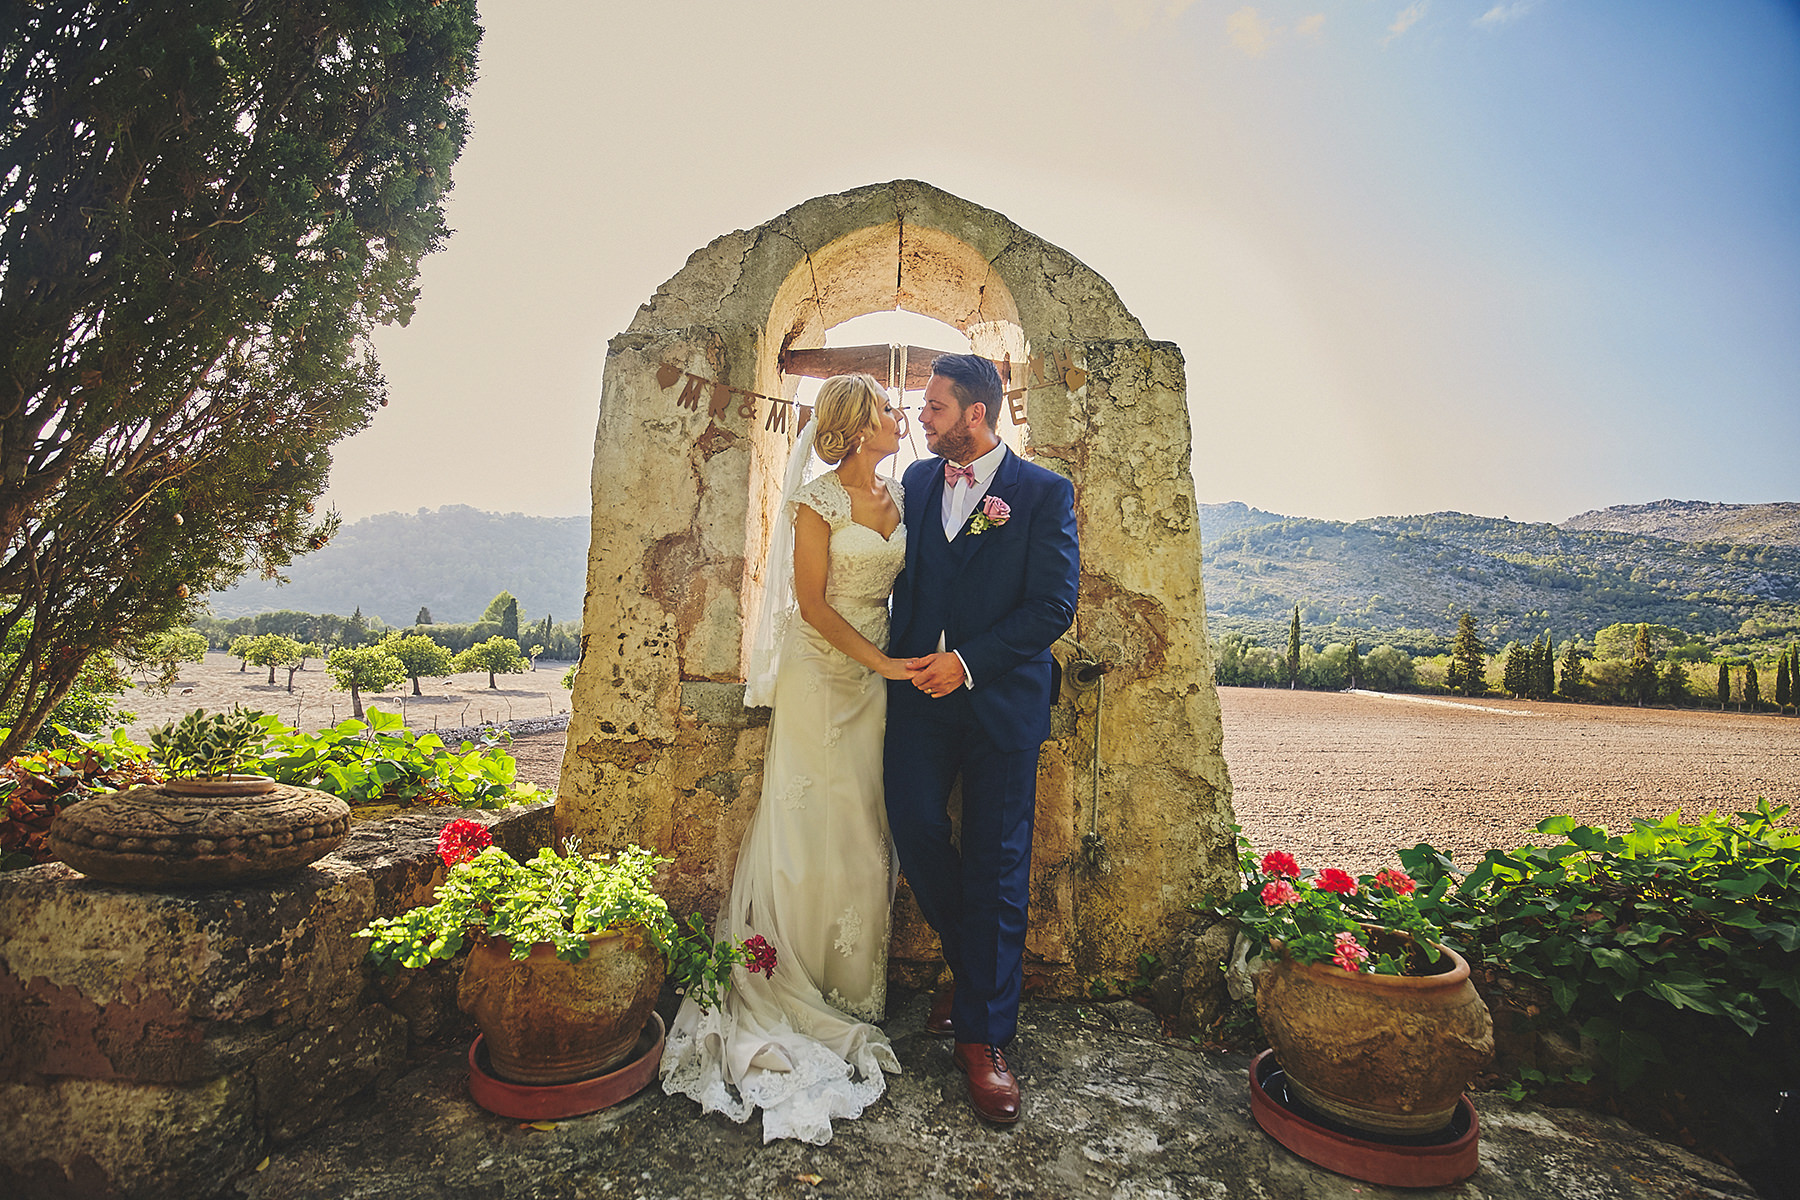 Destination wedding in a magical Mallorca